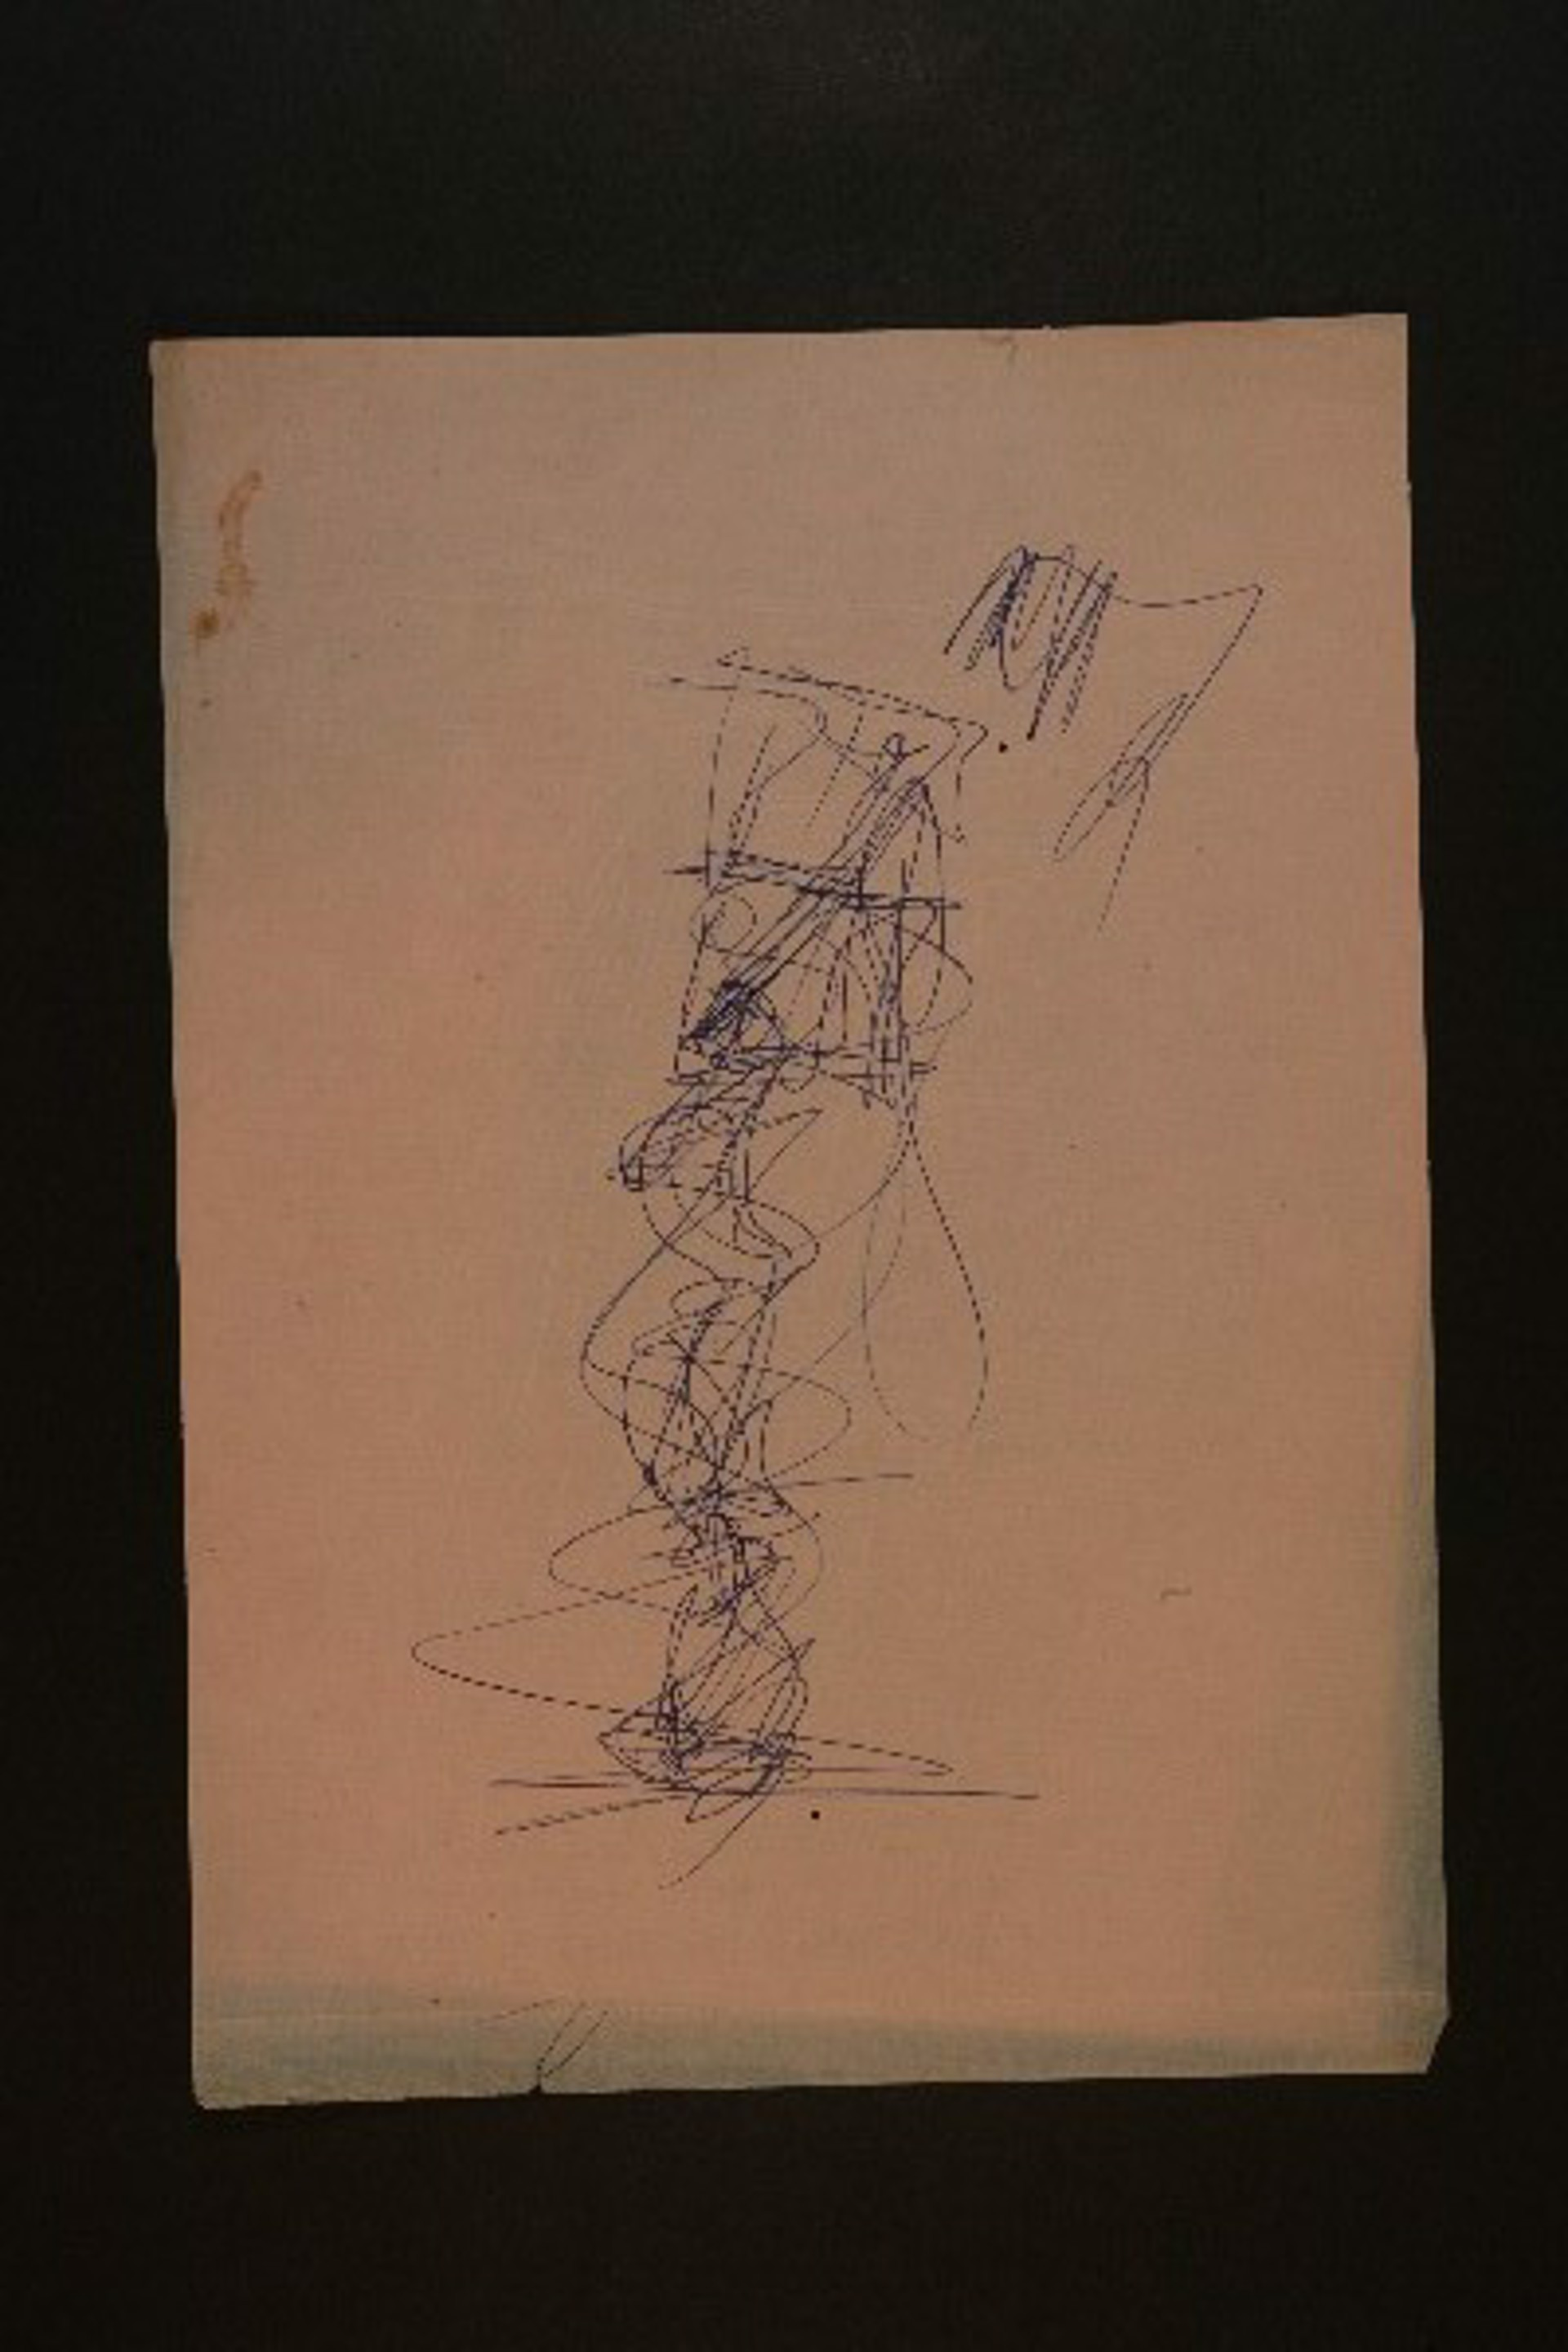 Drawing From the 1970's #64 by Purvis Young (1943 - 2010)